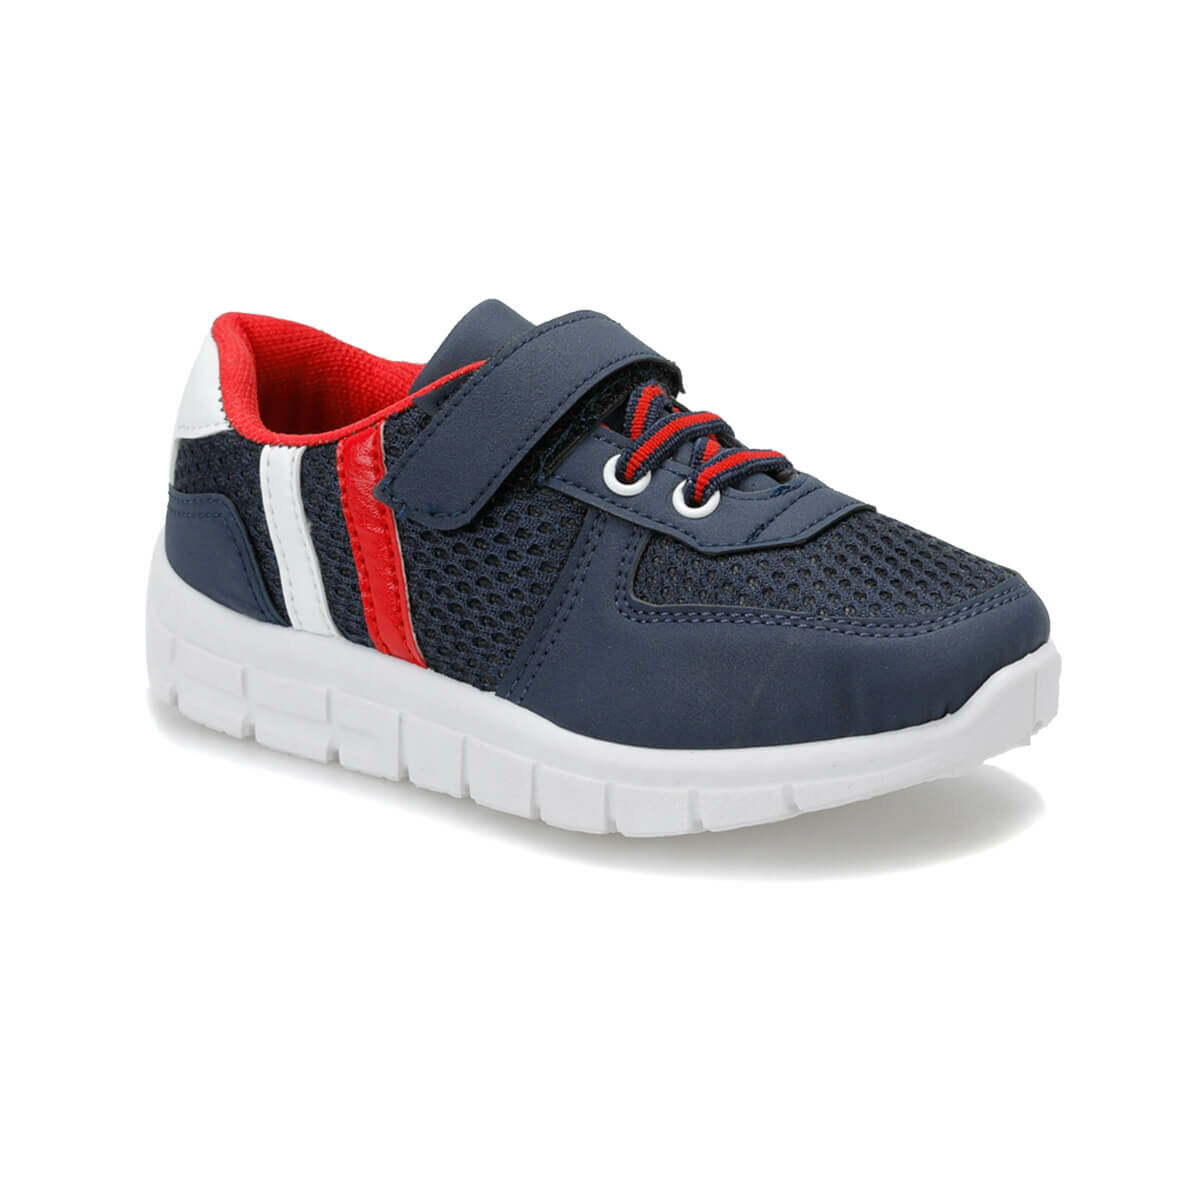 FLO DEMBA Y Navy Blue Male Child Sneaker Shoes I-Cool